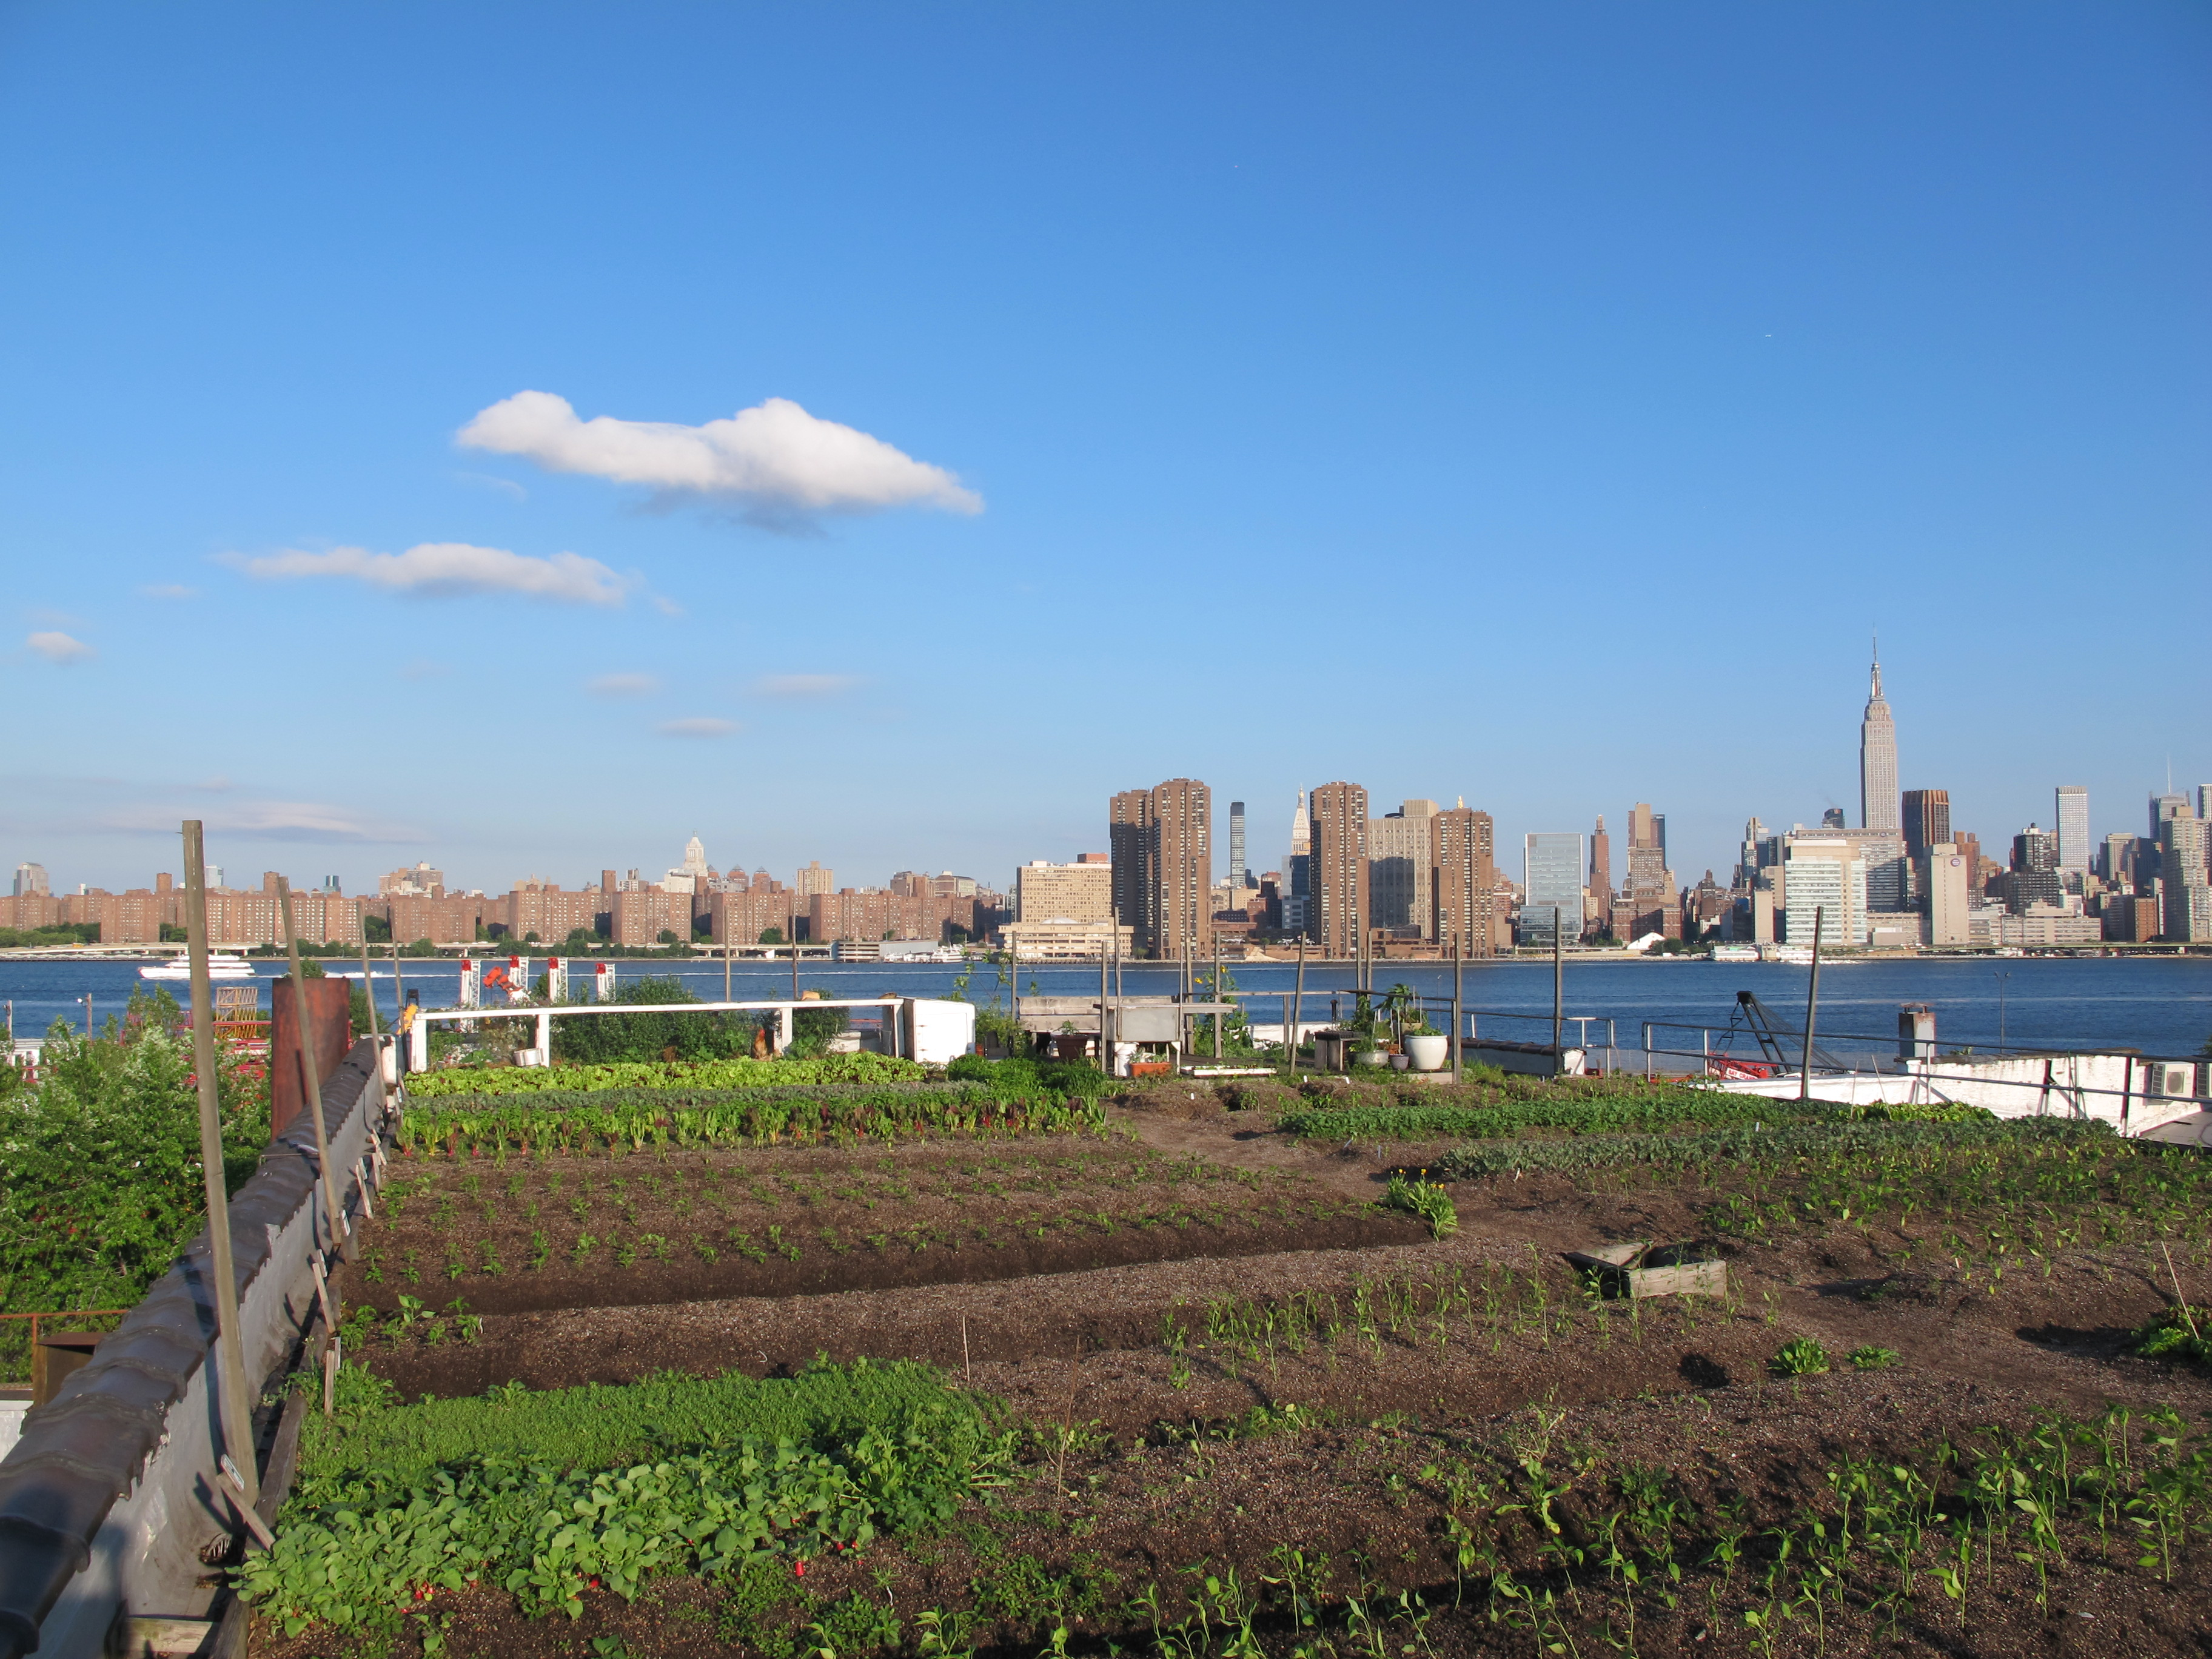 Addressing food water waste and energy yields in urban